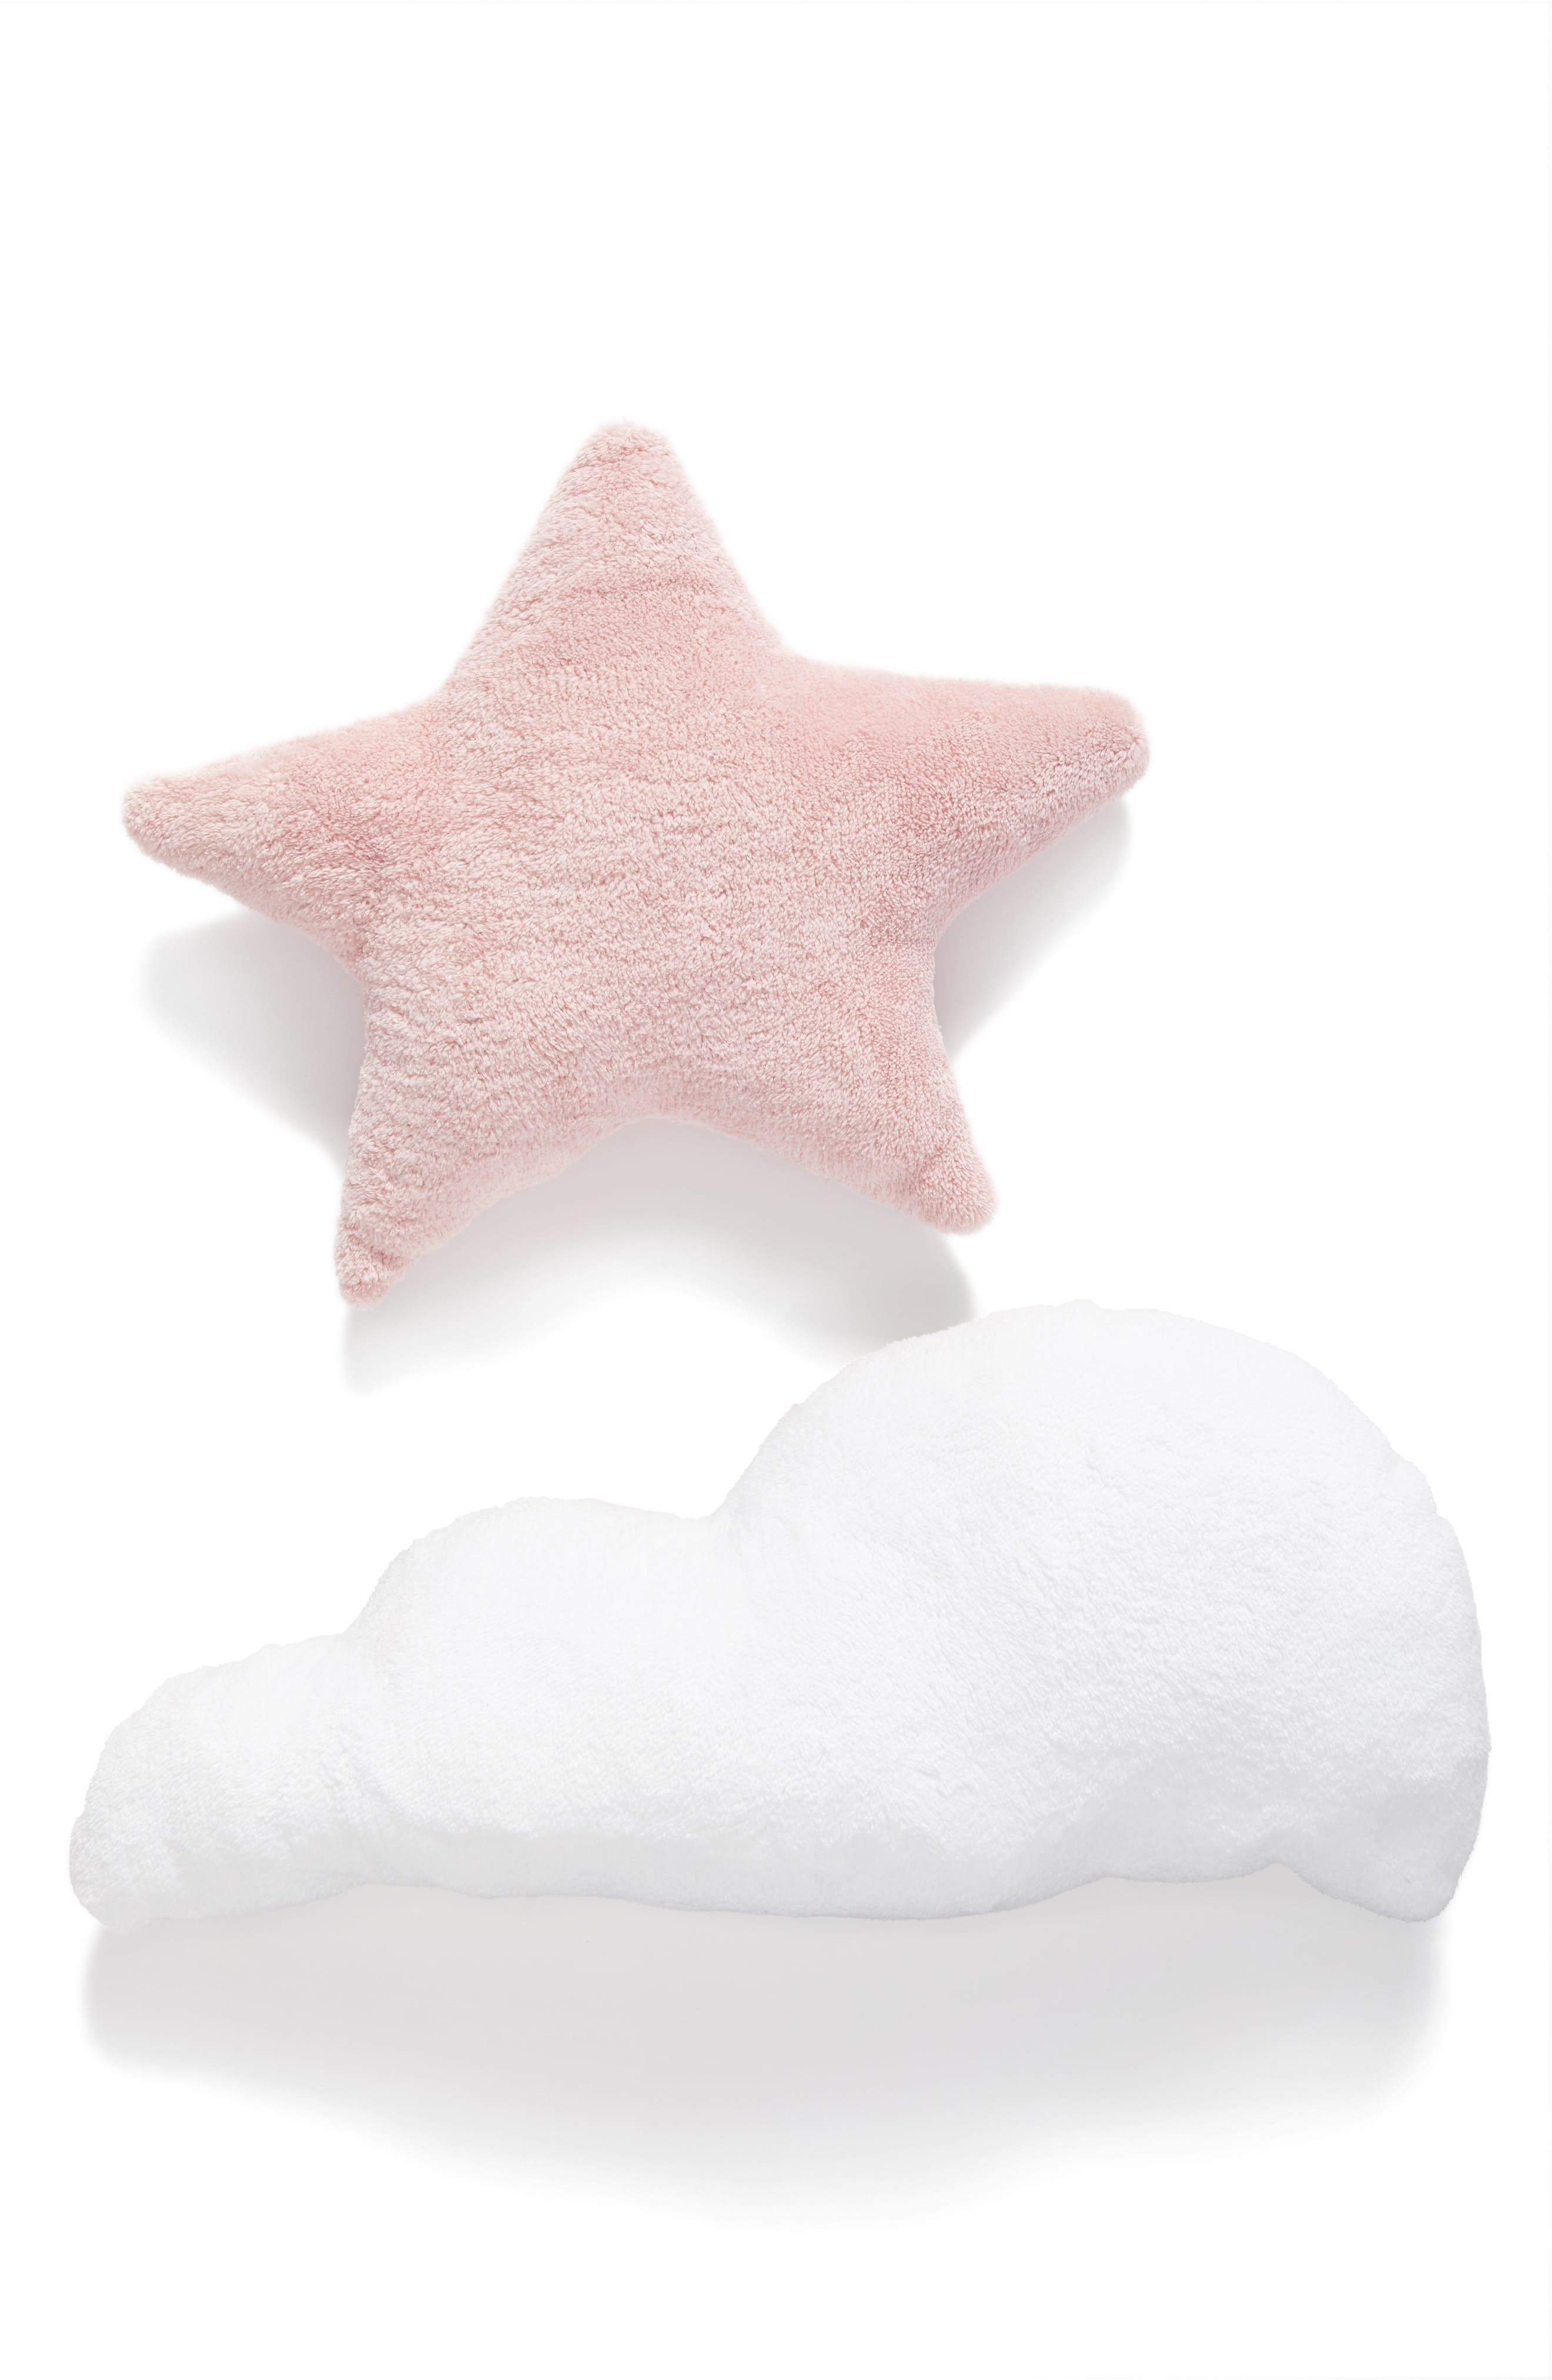 Cloud & Star Pillows,                             Main thumbnail 1, color,                             BLUSH